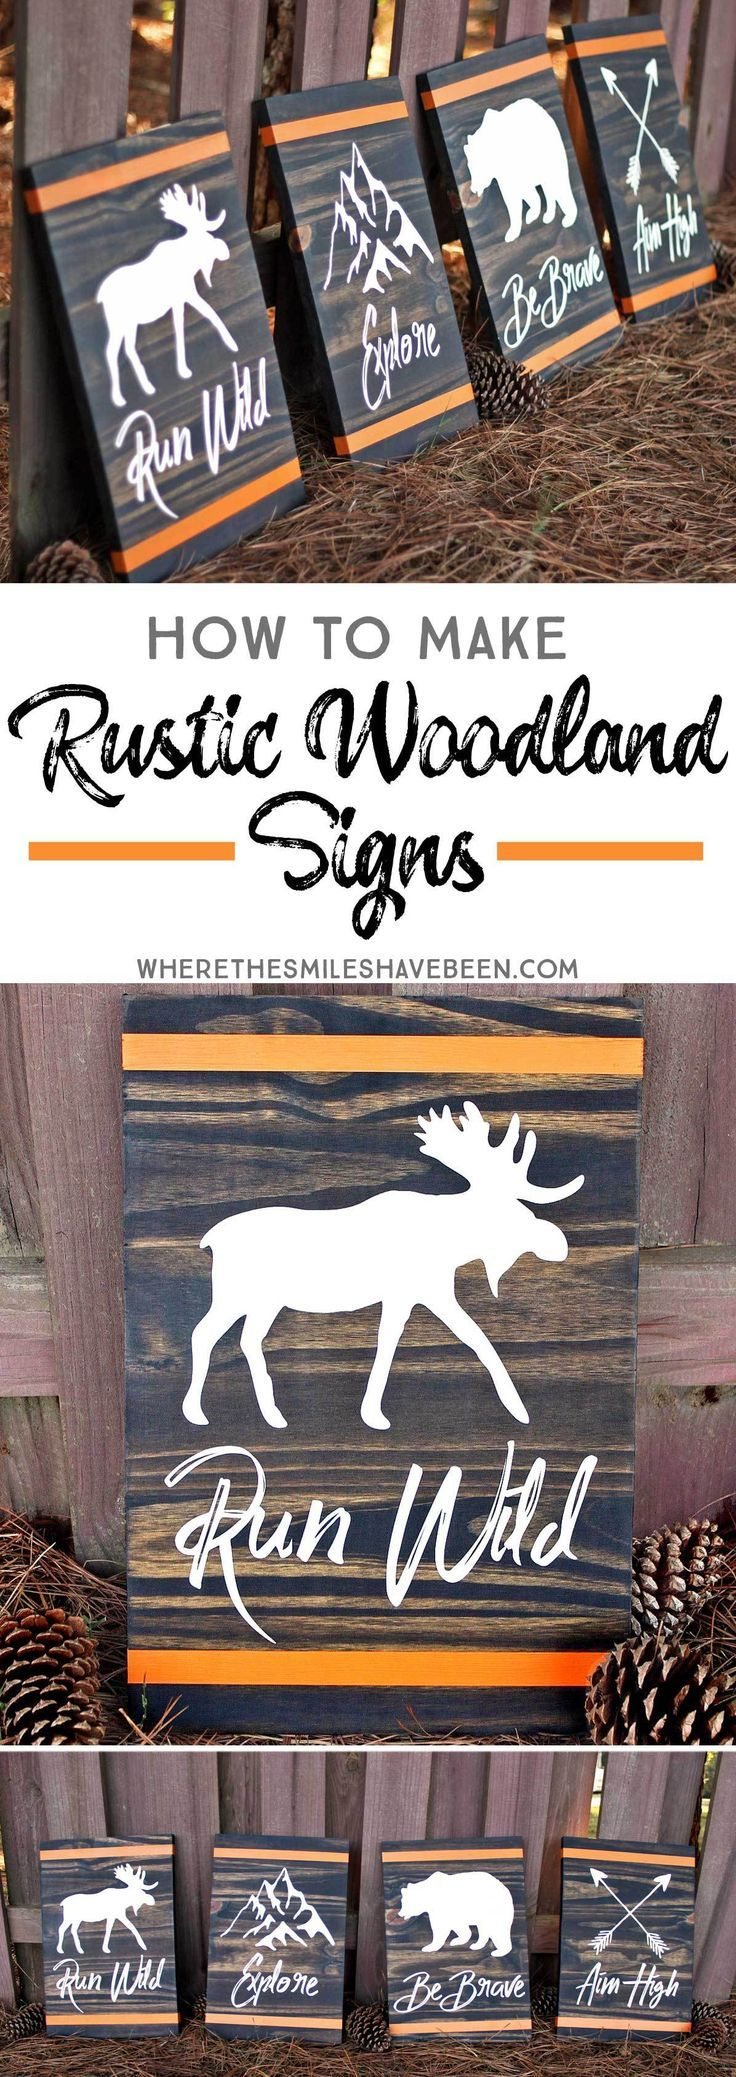 The home front porches porch signs wooden animal signs wooden signs - How To Make Rustic Woodland Signs Rustic Signswooden